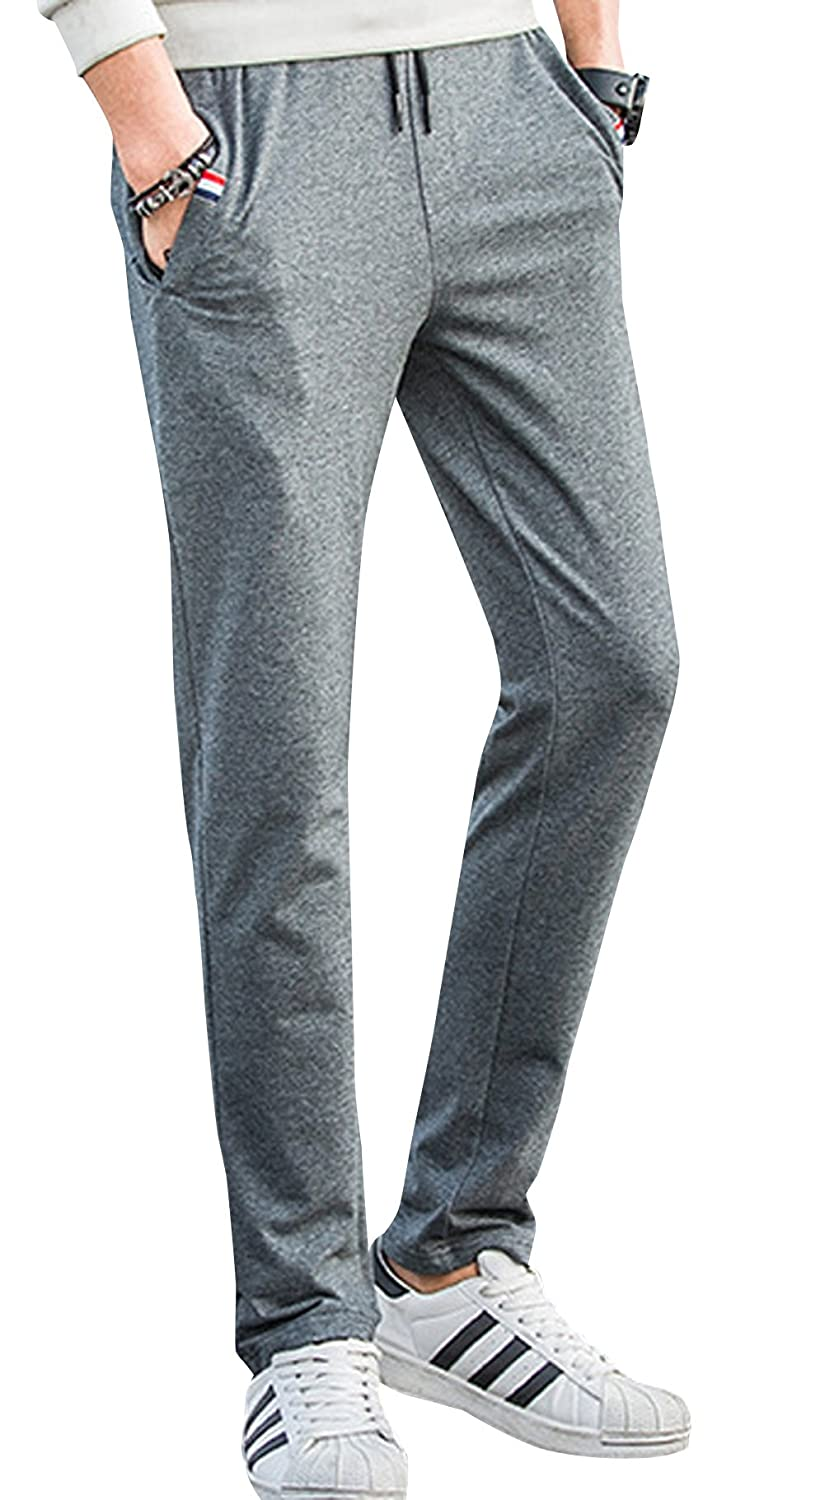 LETSQK Men's Track Gym Athletic Jogger Running Pant with Pockets